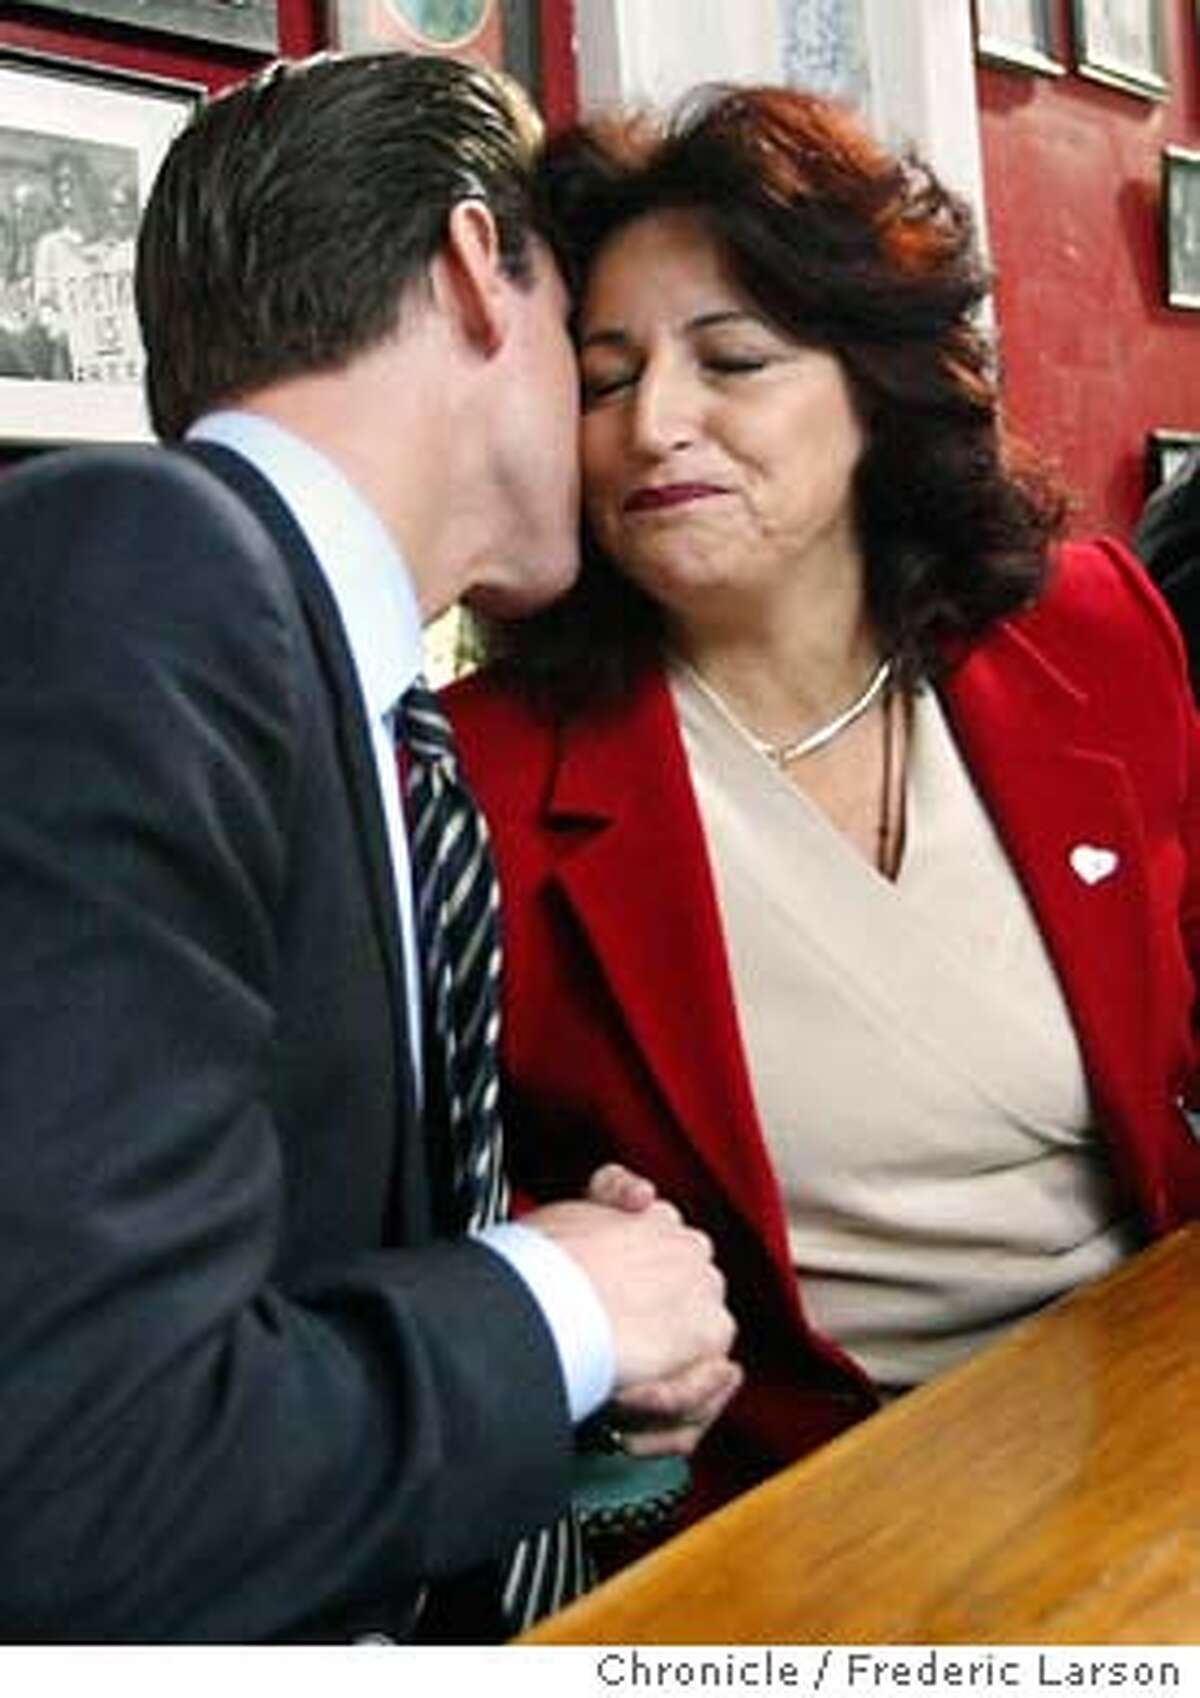 ; Angela Alioto, who came in third in the San Francisco mayor's race, announced her endorsement of Gavin Newsom at her office, 700 Montgomery Street in SF., during a press conference. The Chronicle;